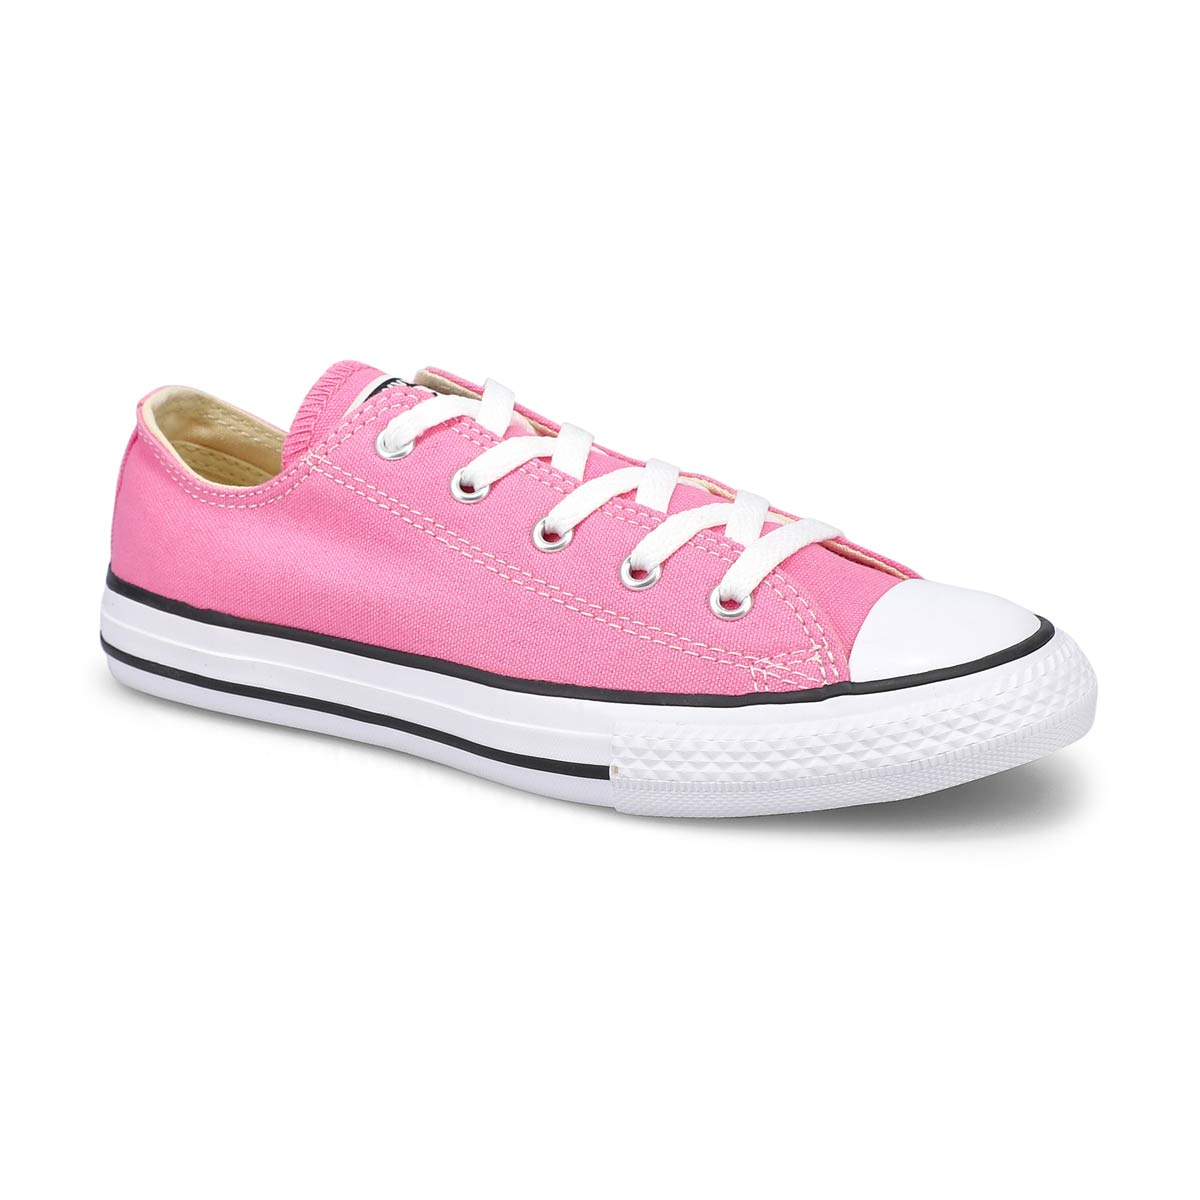 Pink Girls Sneakers Sale: Save Up to 40% Off! Shop dvlnpxiuf.ga's huge selection of Pink Sneakers for Girls - Over styles available. FREE Shipping & Exchanges, and a % price guarantee!